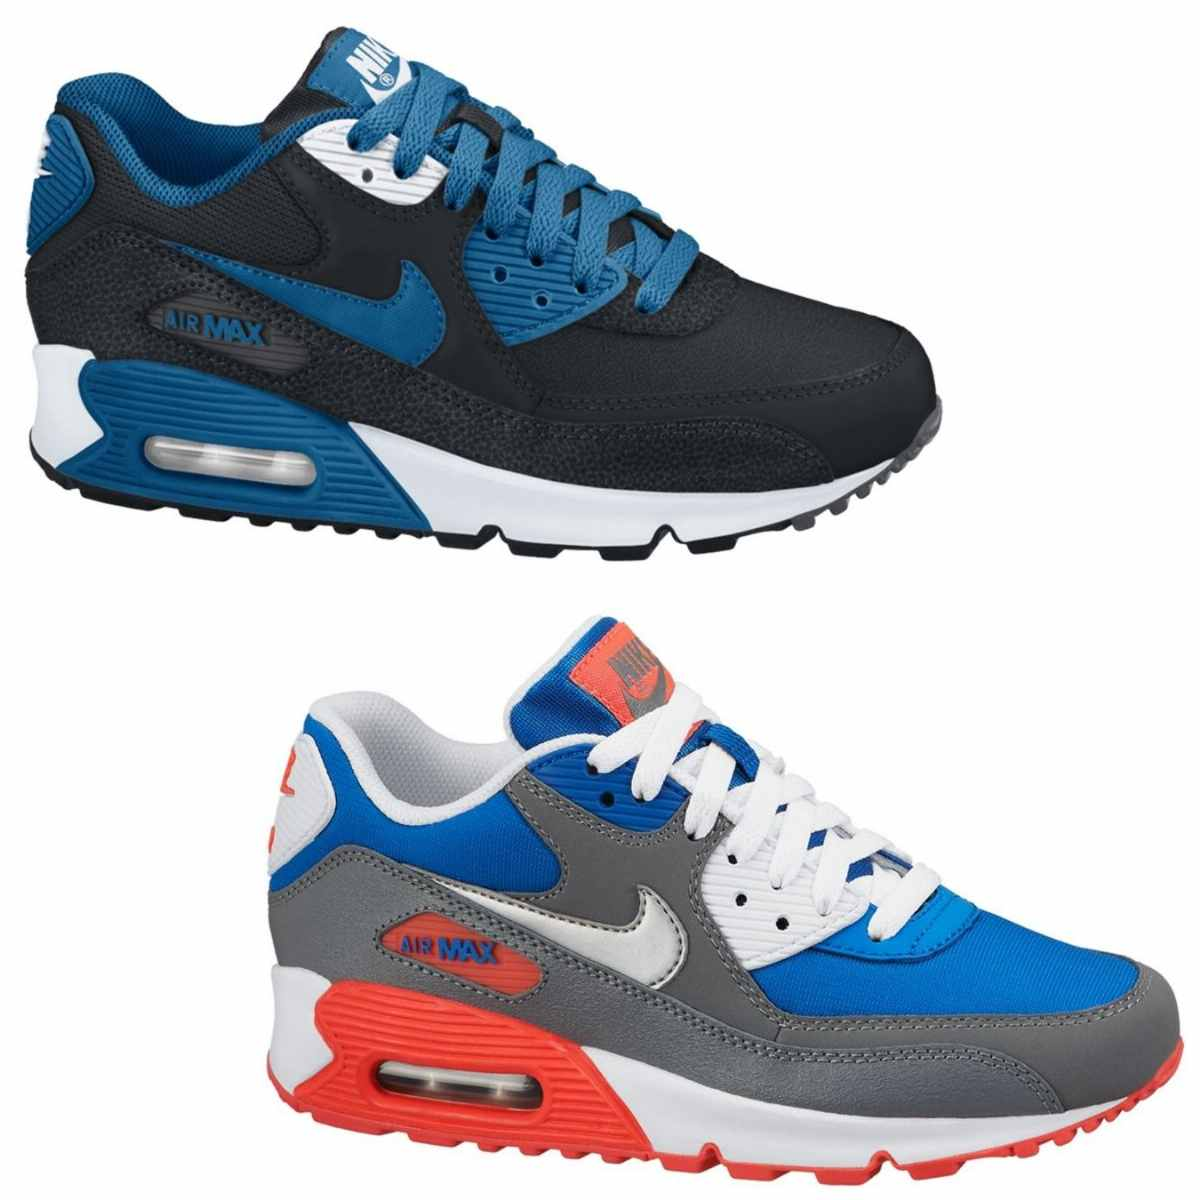 nike air max 90 schuhe turnschuhe sneaker damen kinder. Black Bedroom Furniture Sets. Home Design Ideas